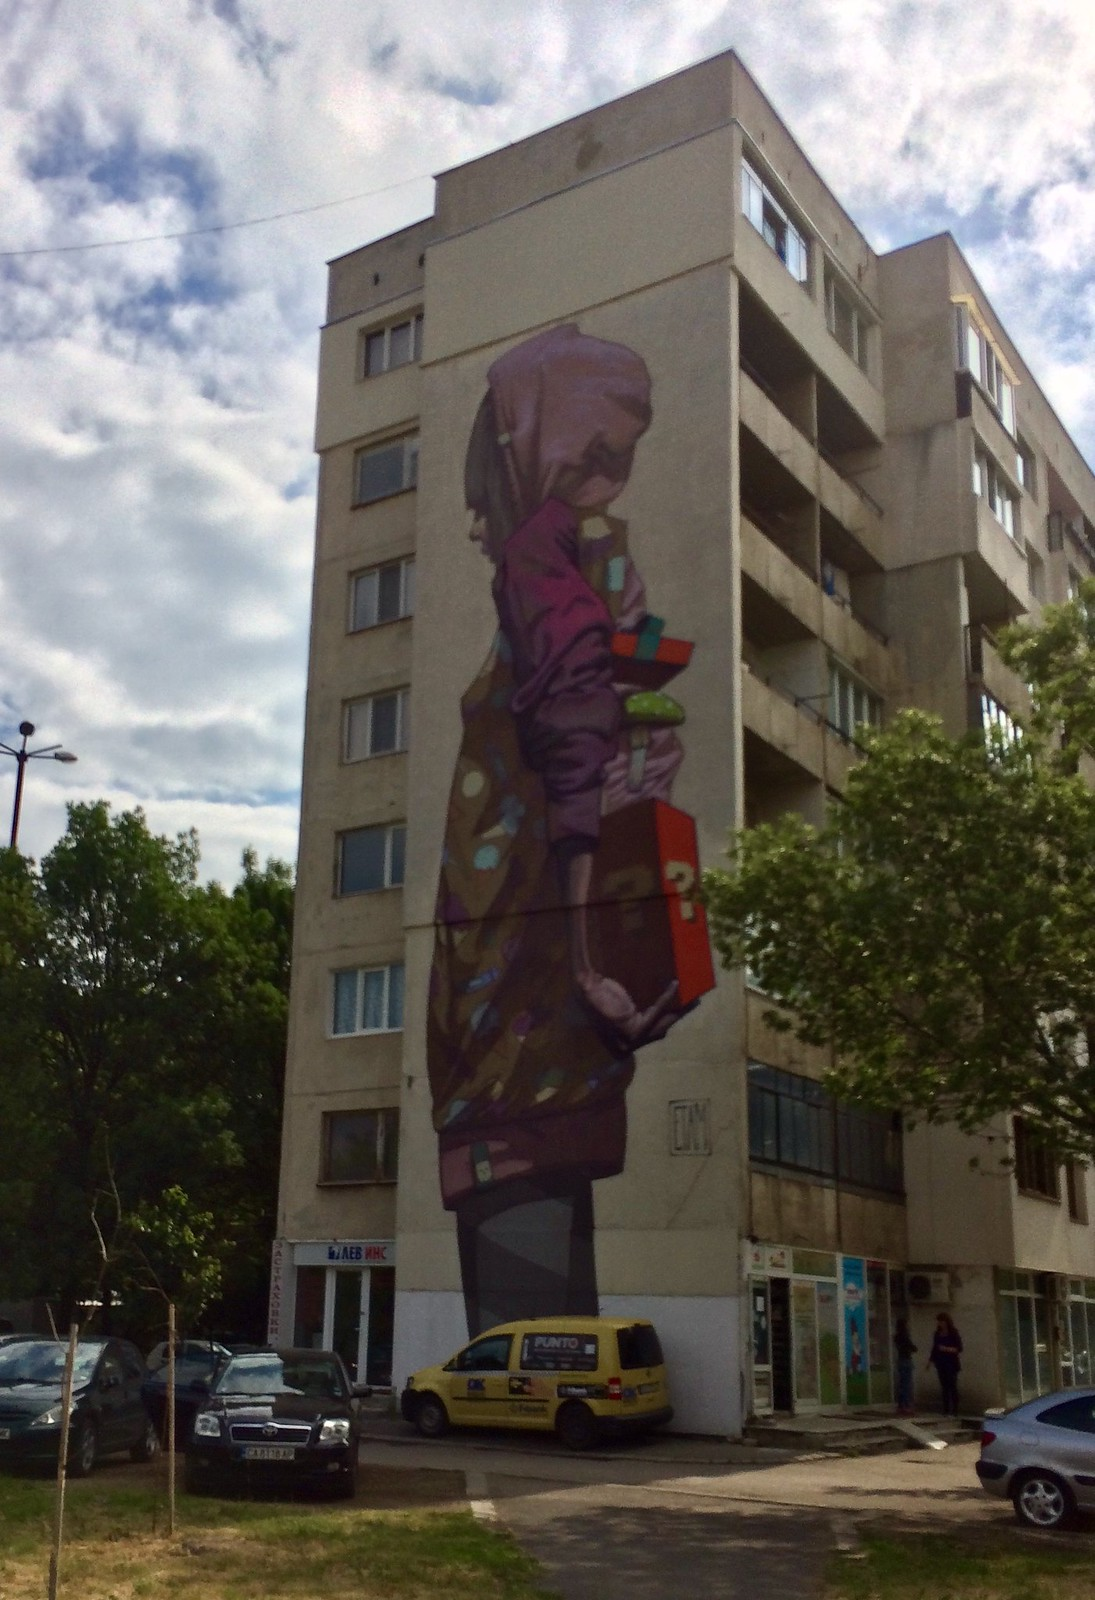 201705 - Balkans - Full Building Figures Graffiti - 23 of 46 - Sofia - zhk Hadzhi Dimitar - ulitsa Ostrovo, May 22, 2017